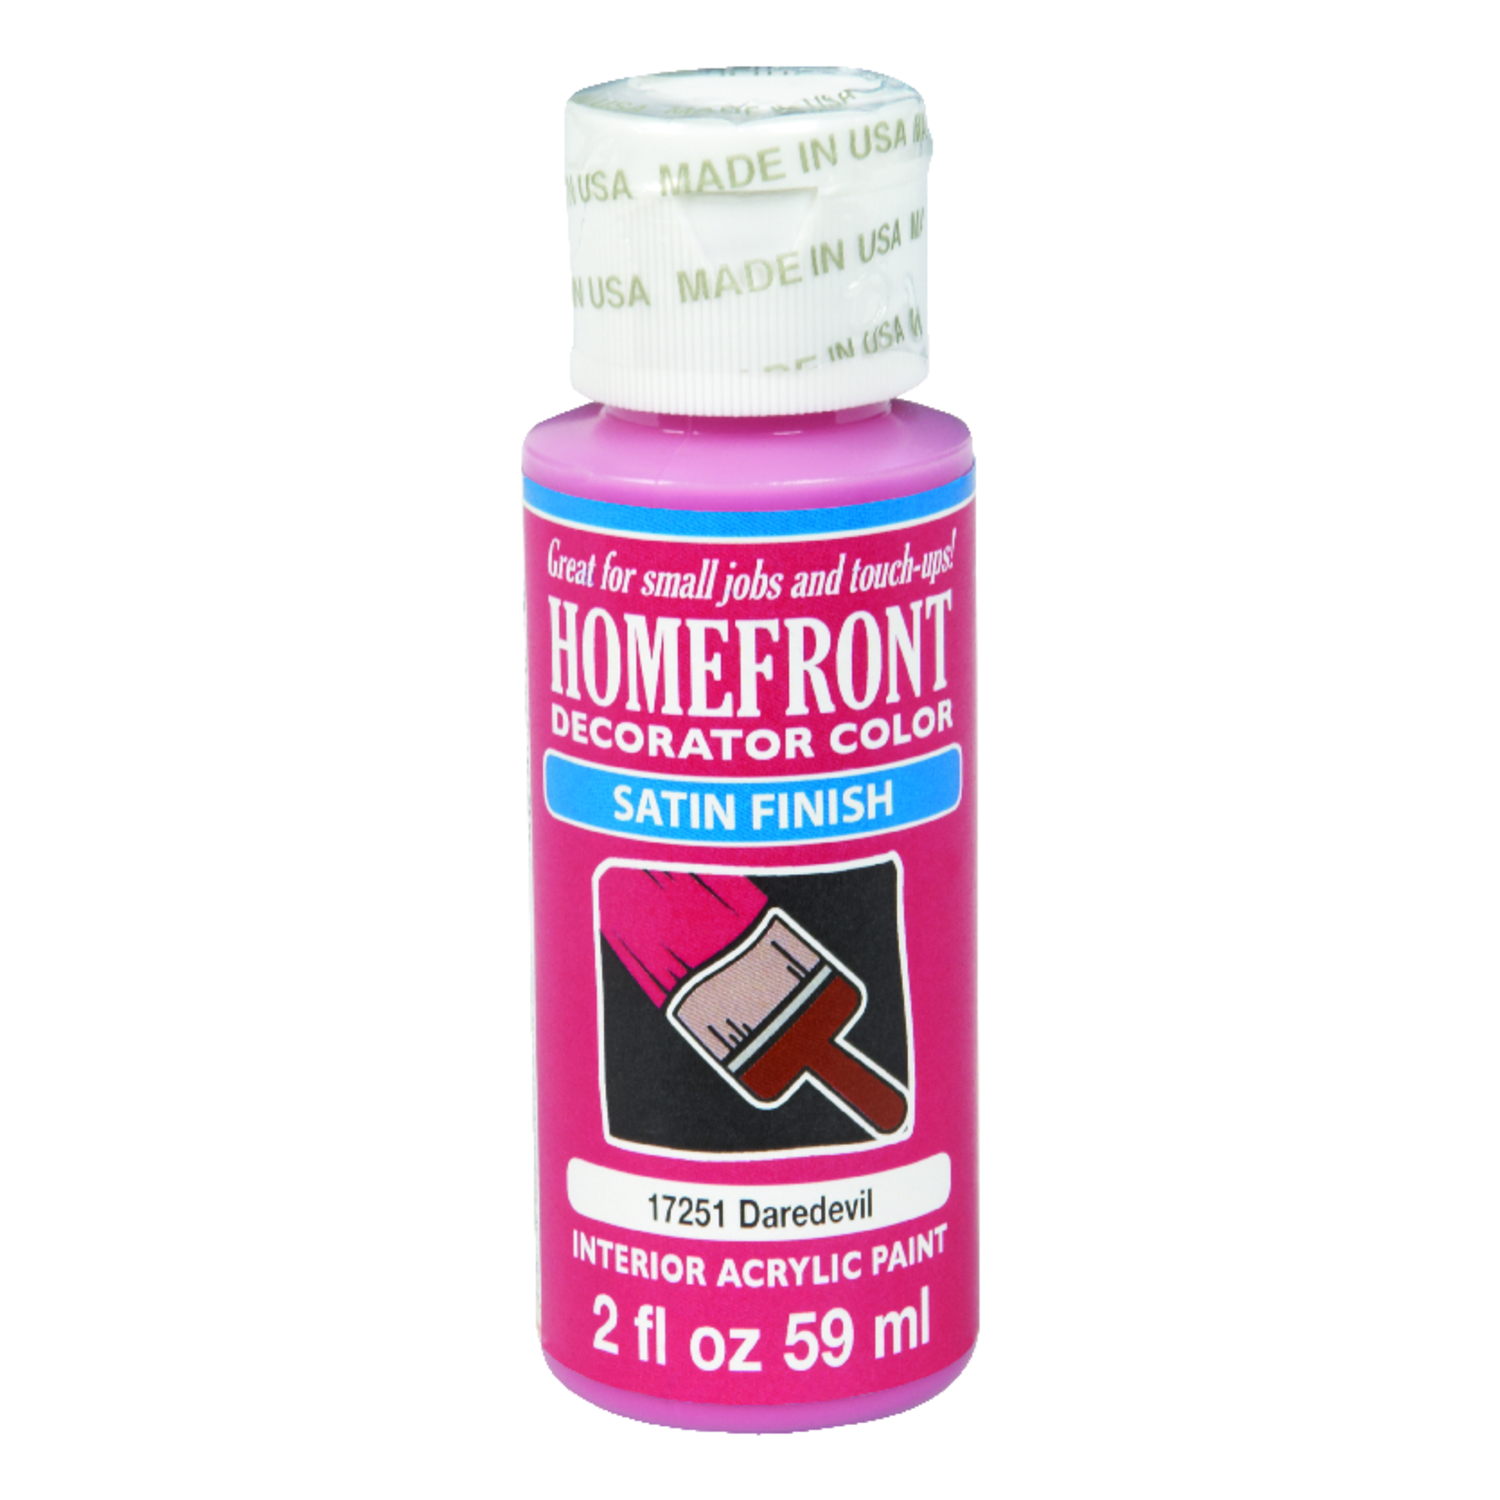 Homefront  Decorator Color  Satin  Daredevil  2 oz. Acrylic Latex  Hobby Paint